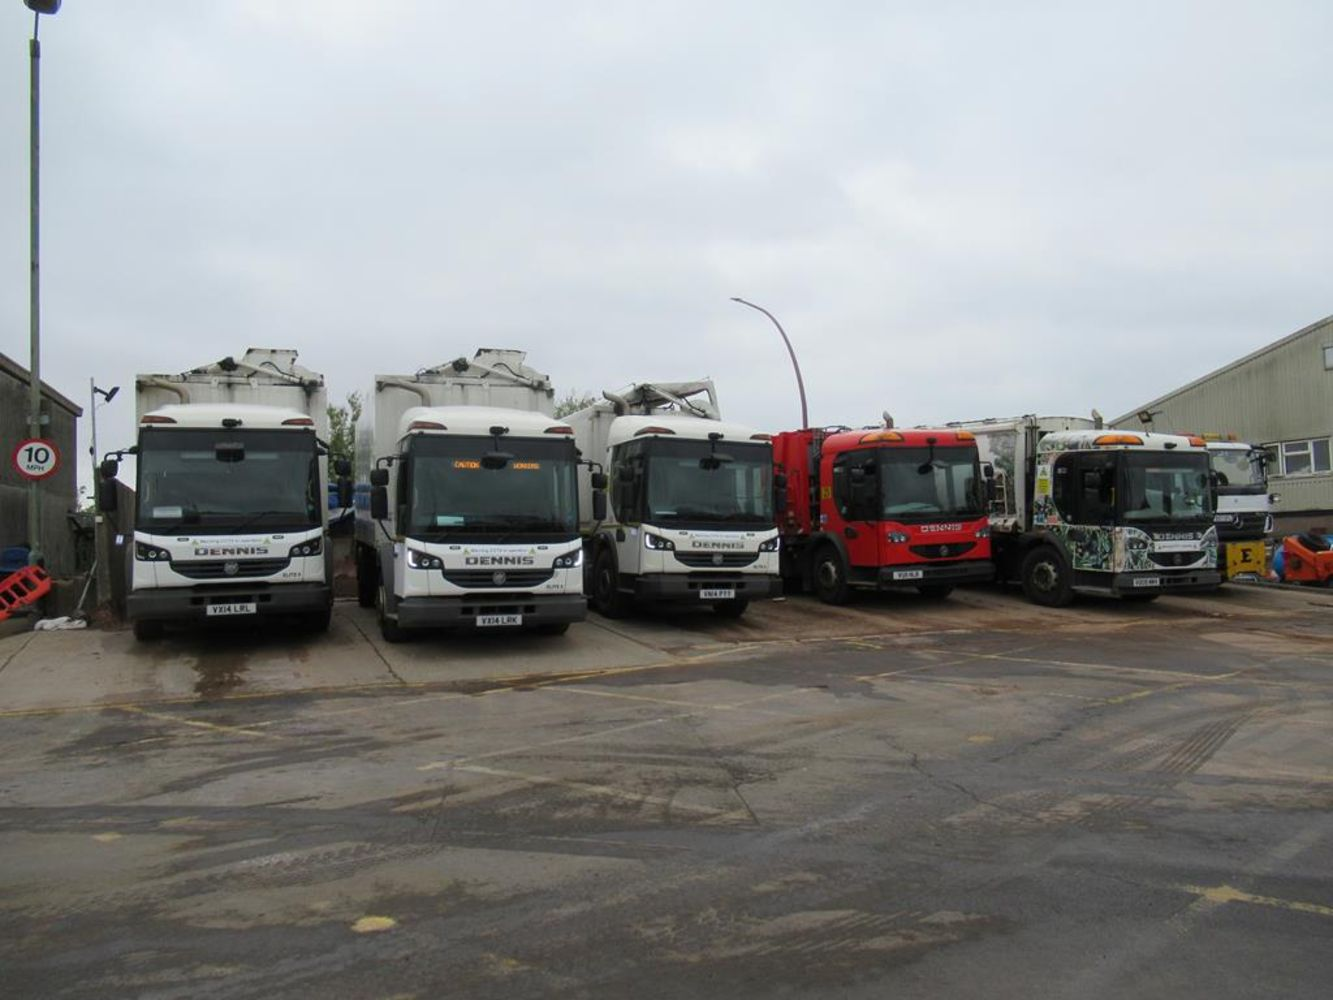 Surplus Refuse Collection Vehicles and Ground Maintenance Equipment & Boat